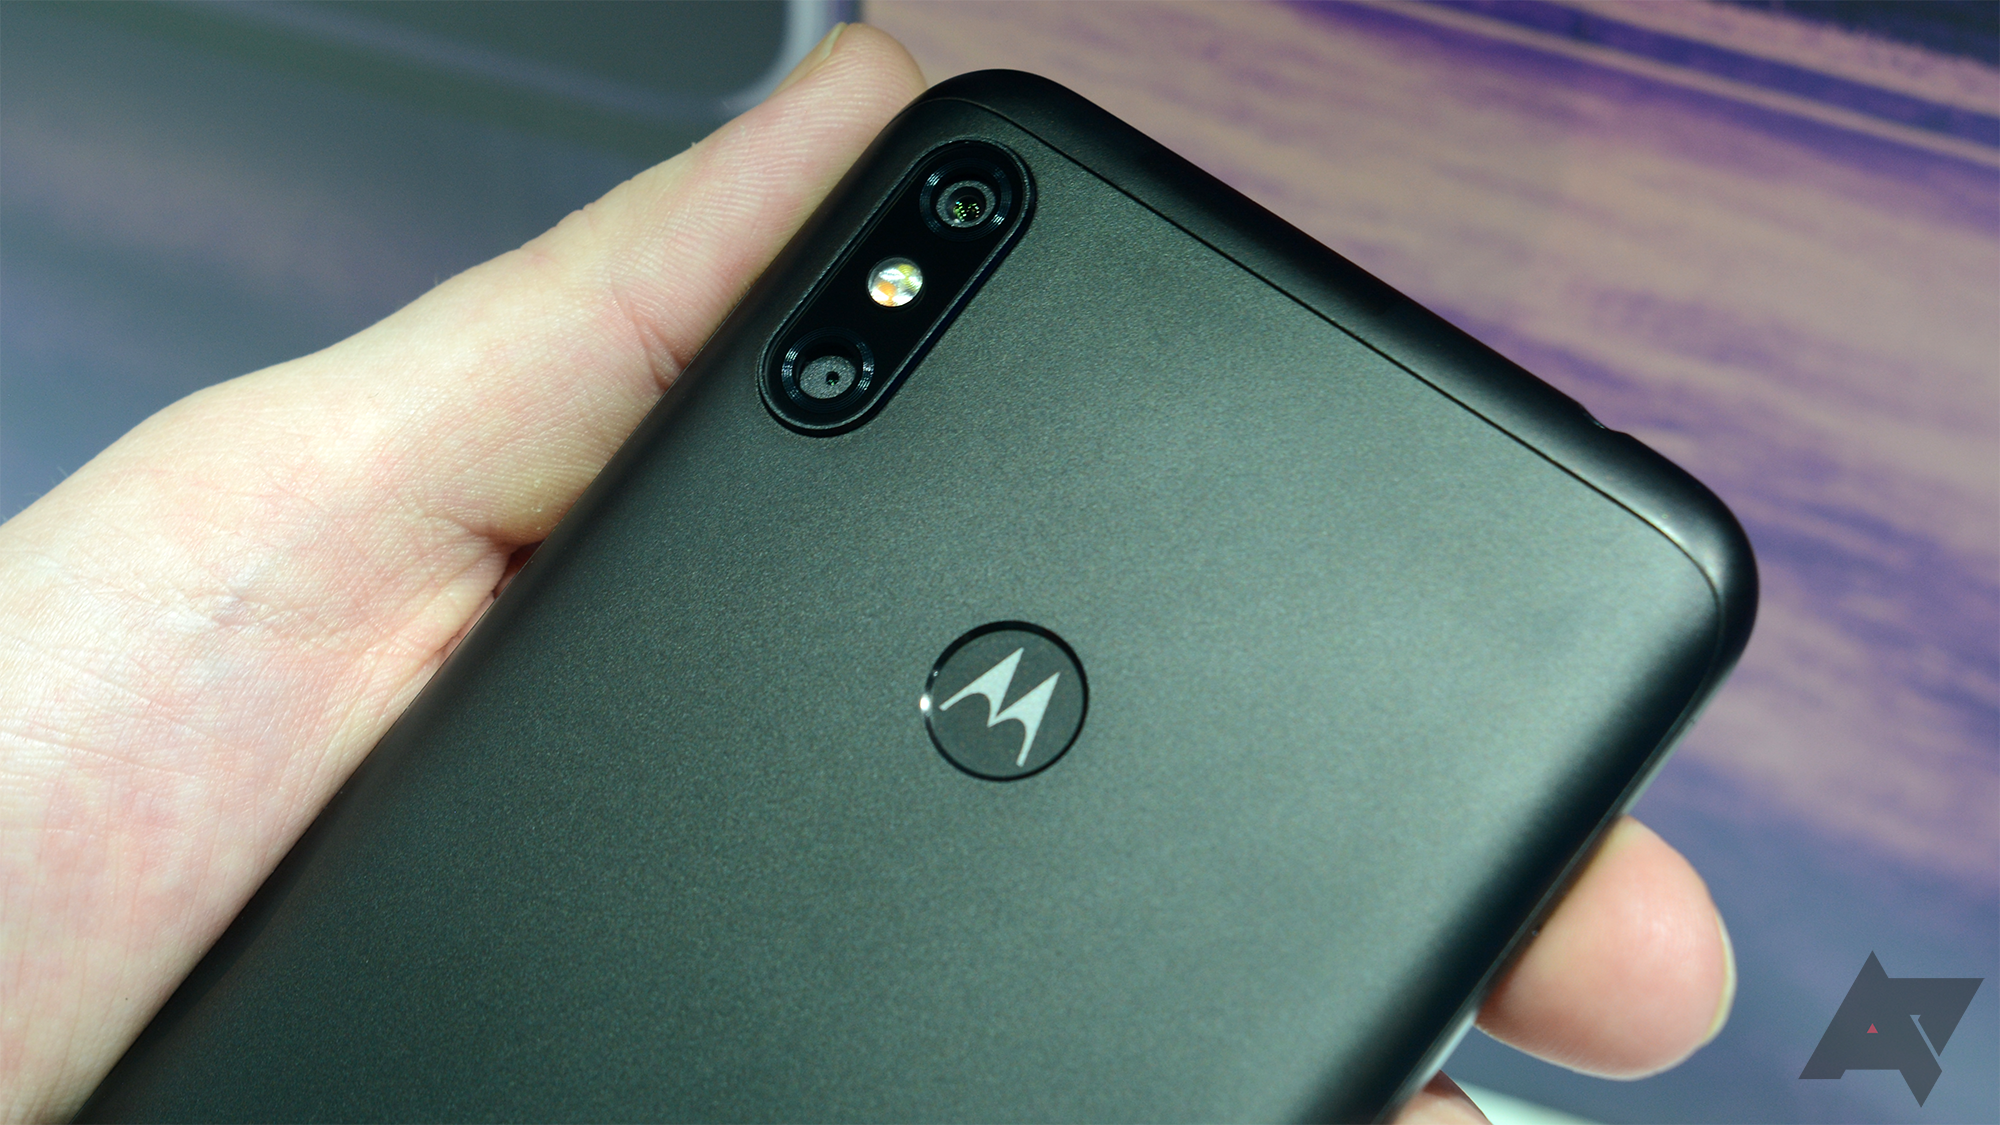 Moto Camera update brings live filters, leveler UI, and histogram